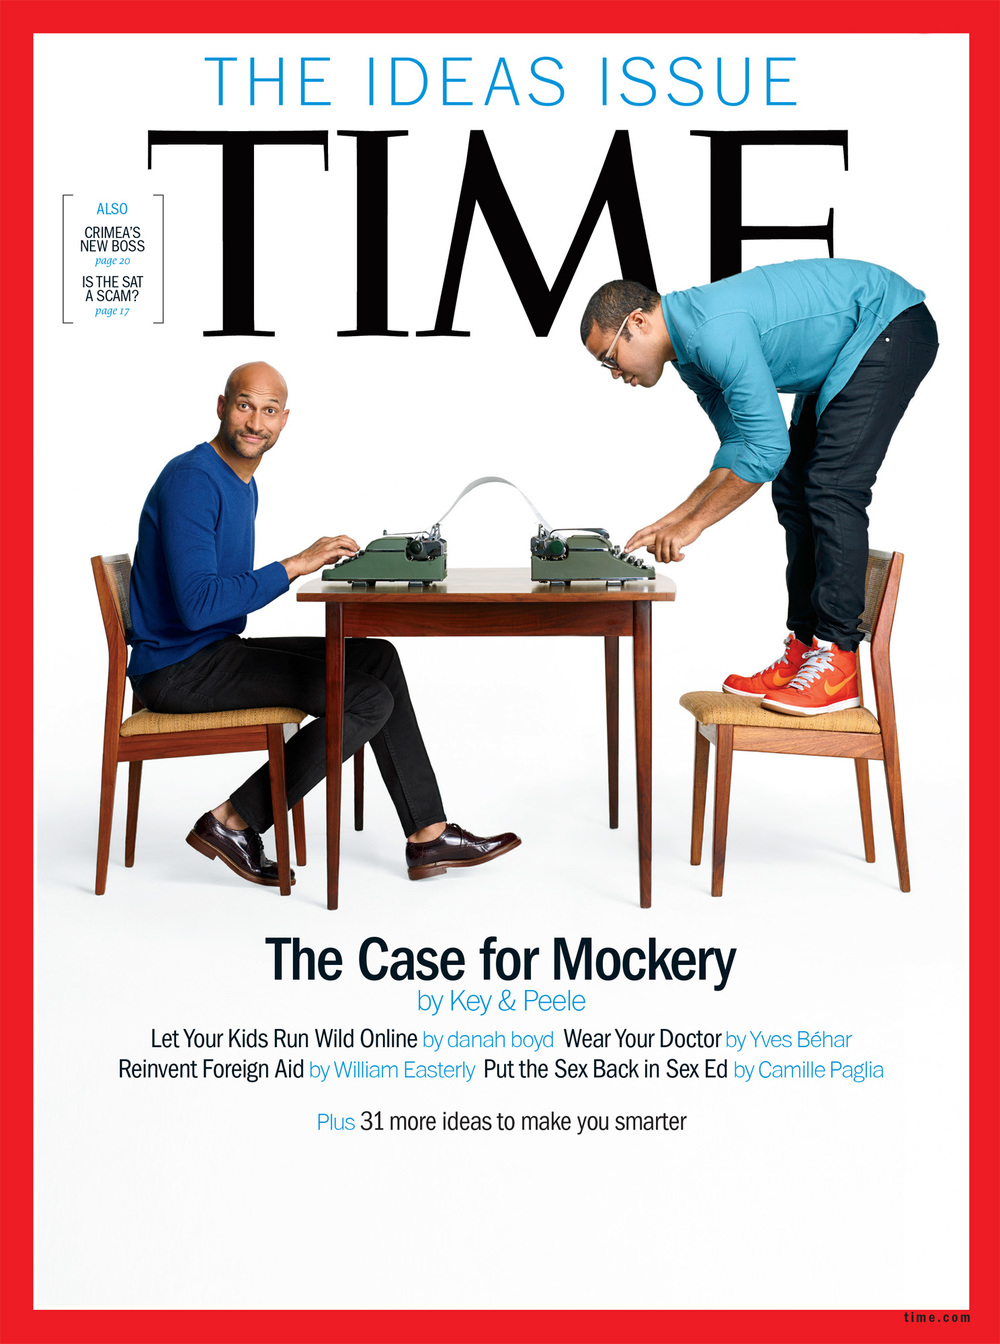 Key & Peele,  Time , Covers